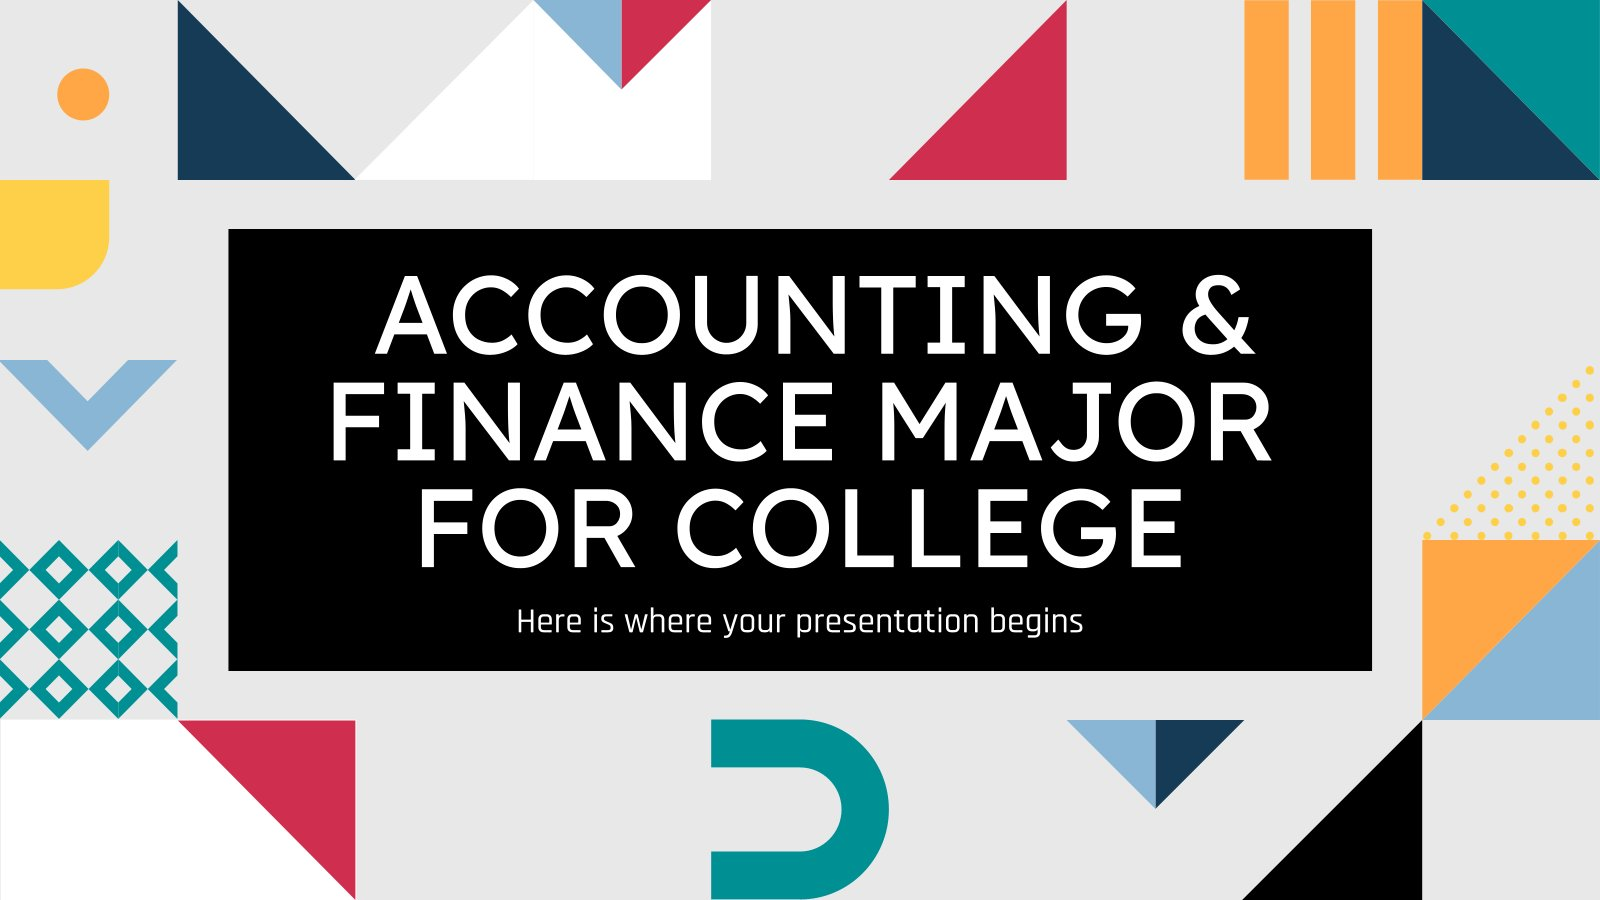 Accounting & Finance Major for College presentation template